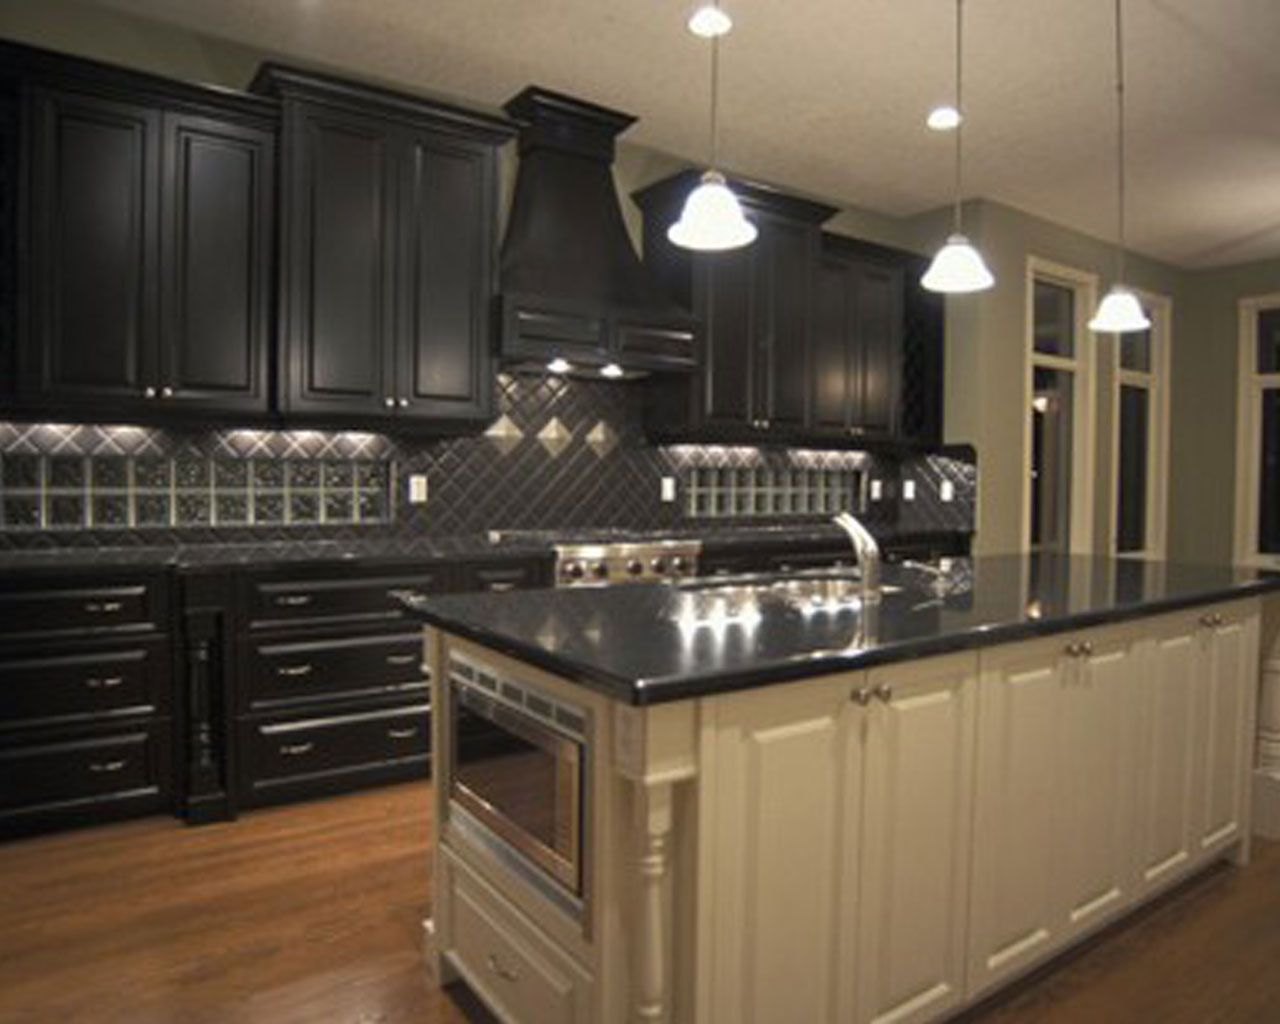 finest design black kitchen cabinets wallpapers - Black Kitchen Cabinets Pictures